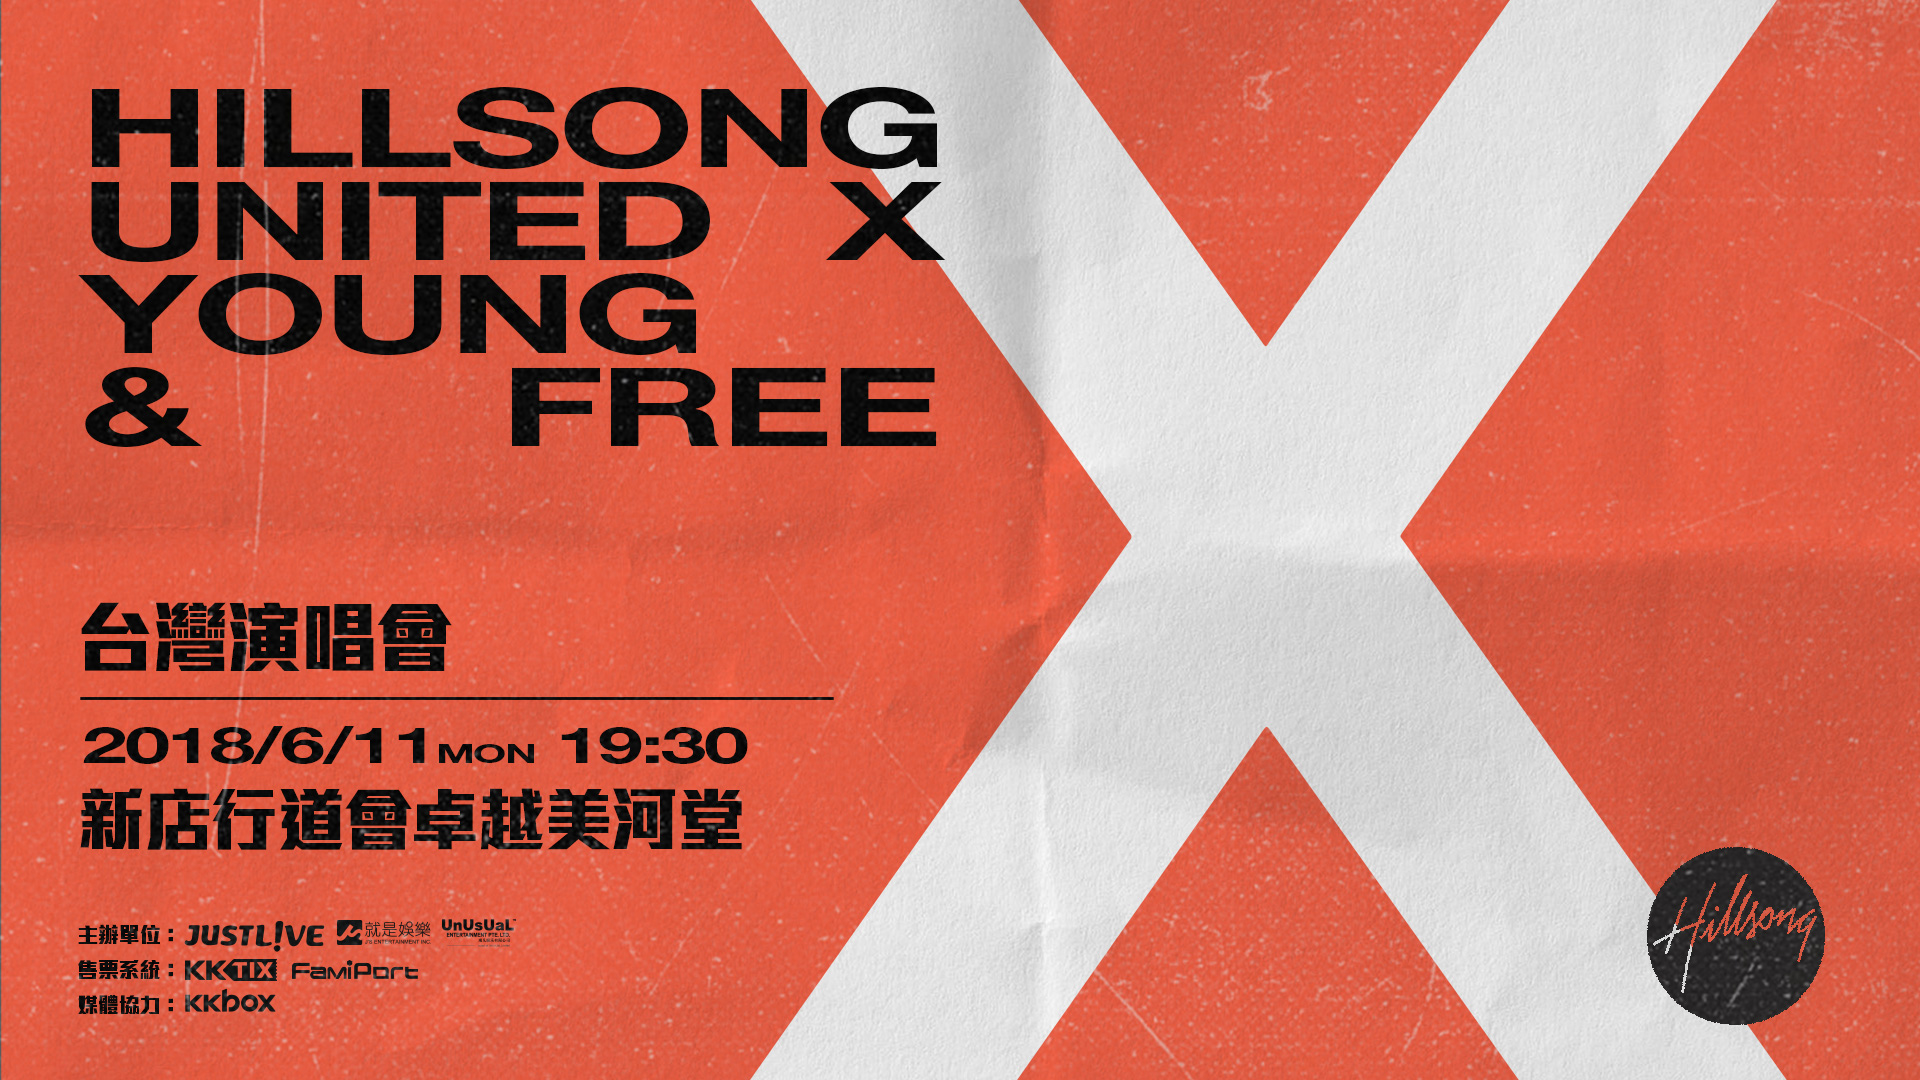 Hillsong UNITED x Young & Free|臺灣首場演唱會